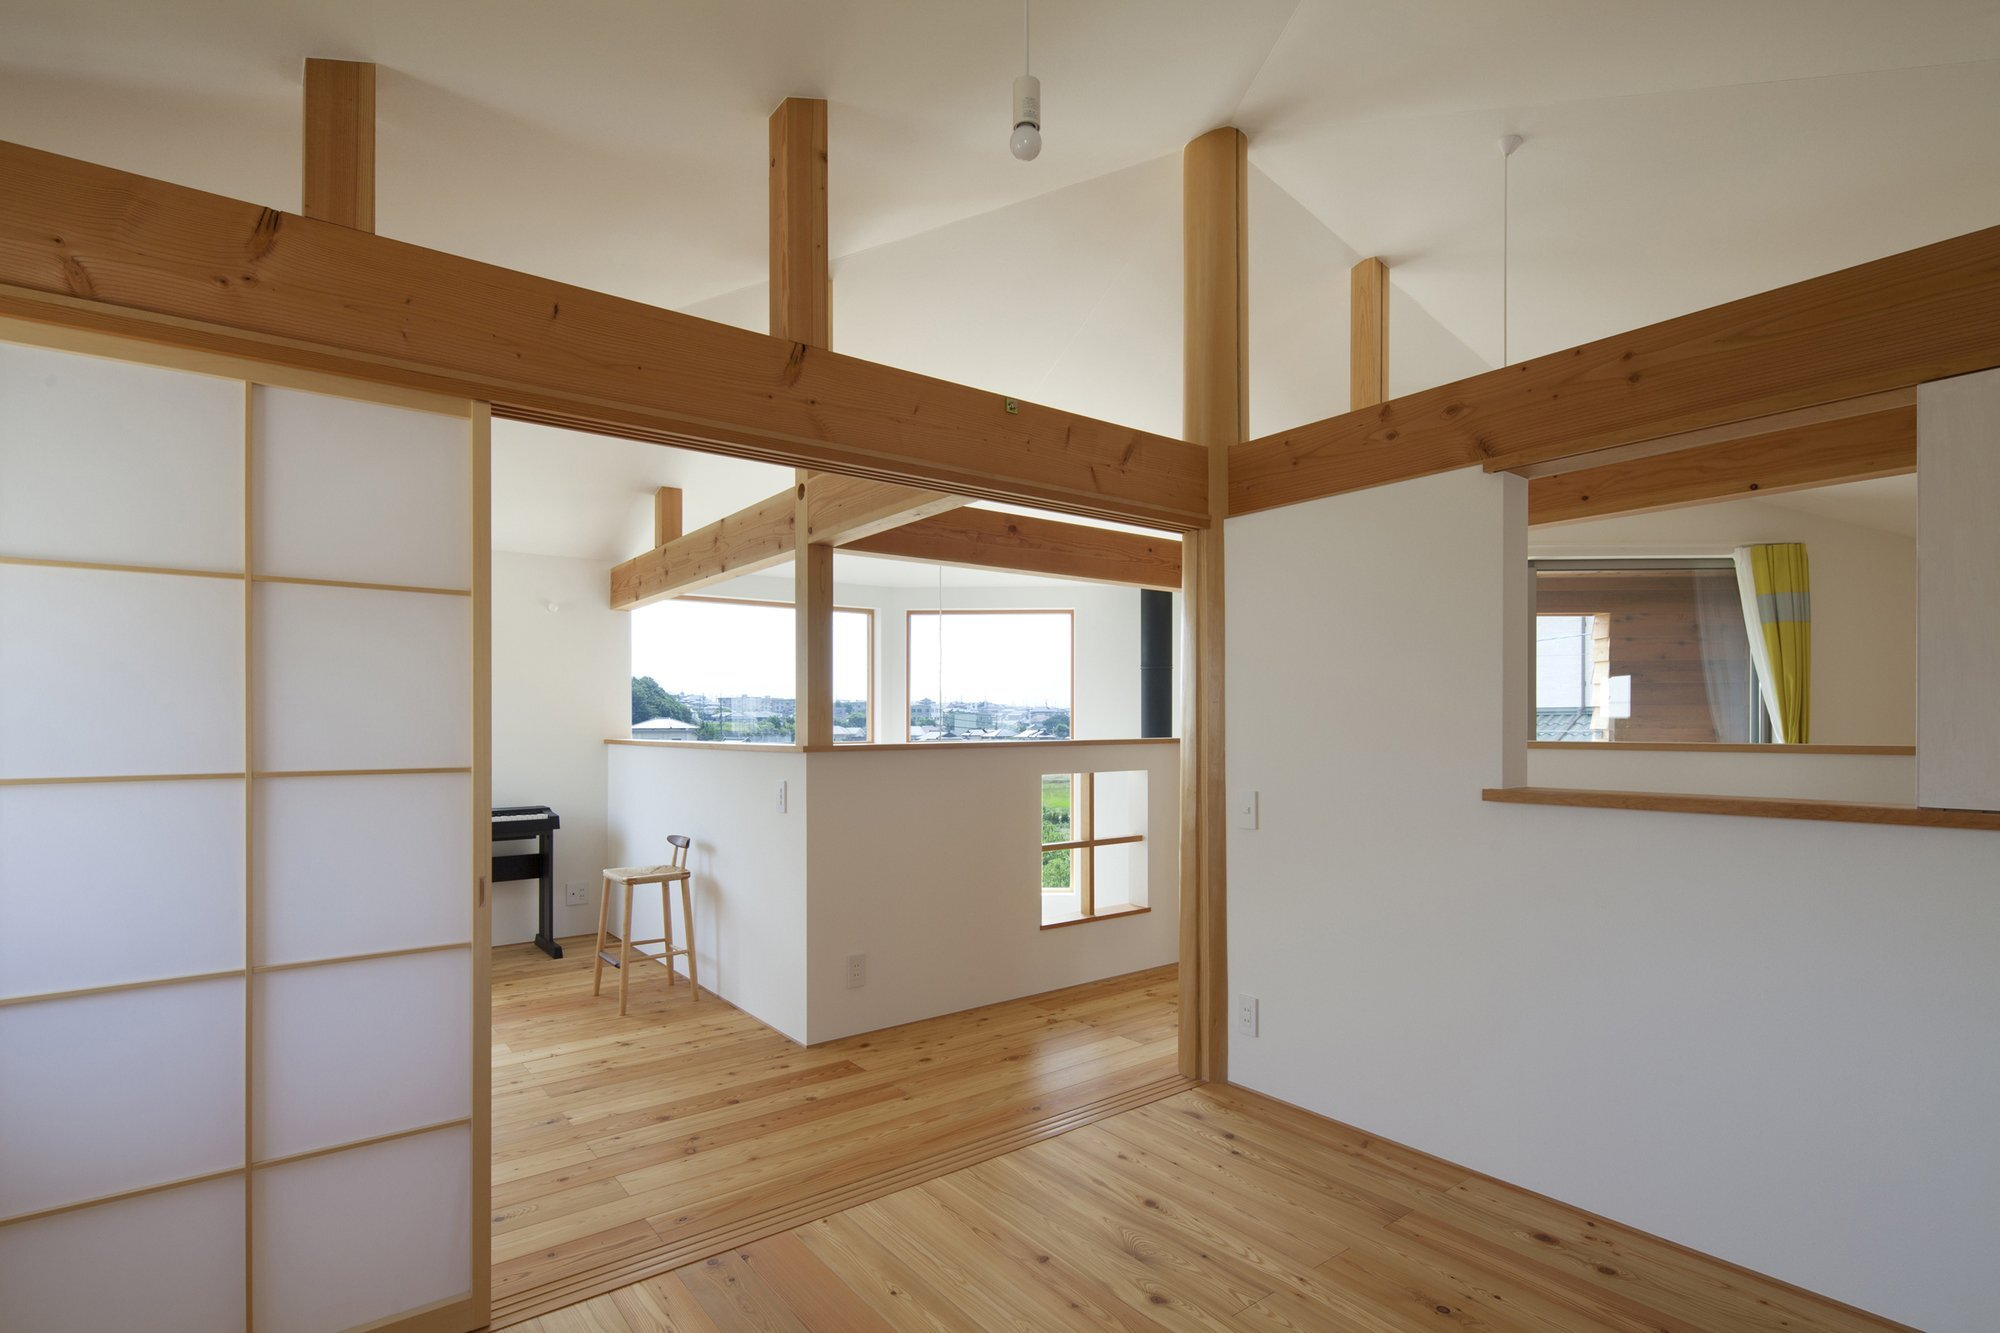 The Frontier House - Small Japanese House - Mamiya Shinichi Design Studio - Toyoake Japan - Bedroom - Humble Homes